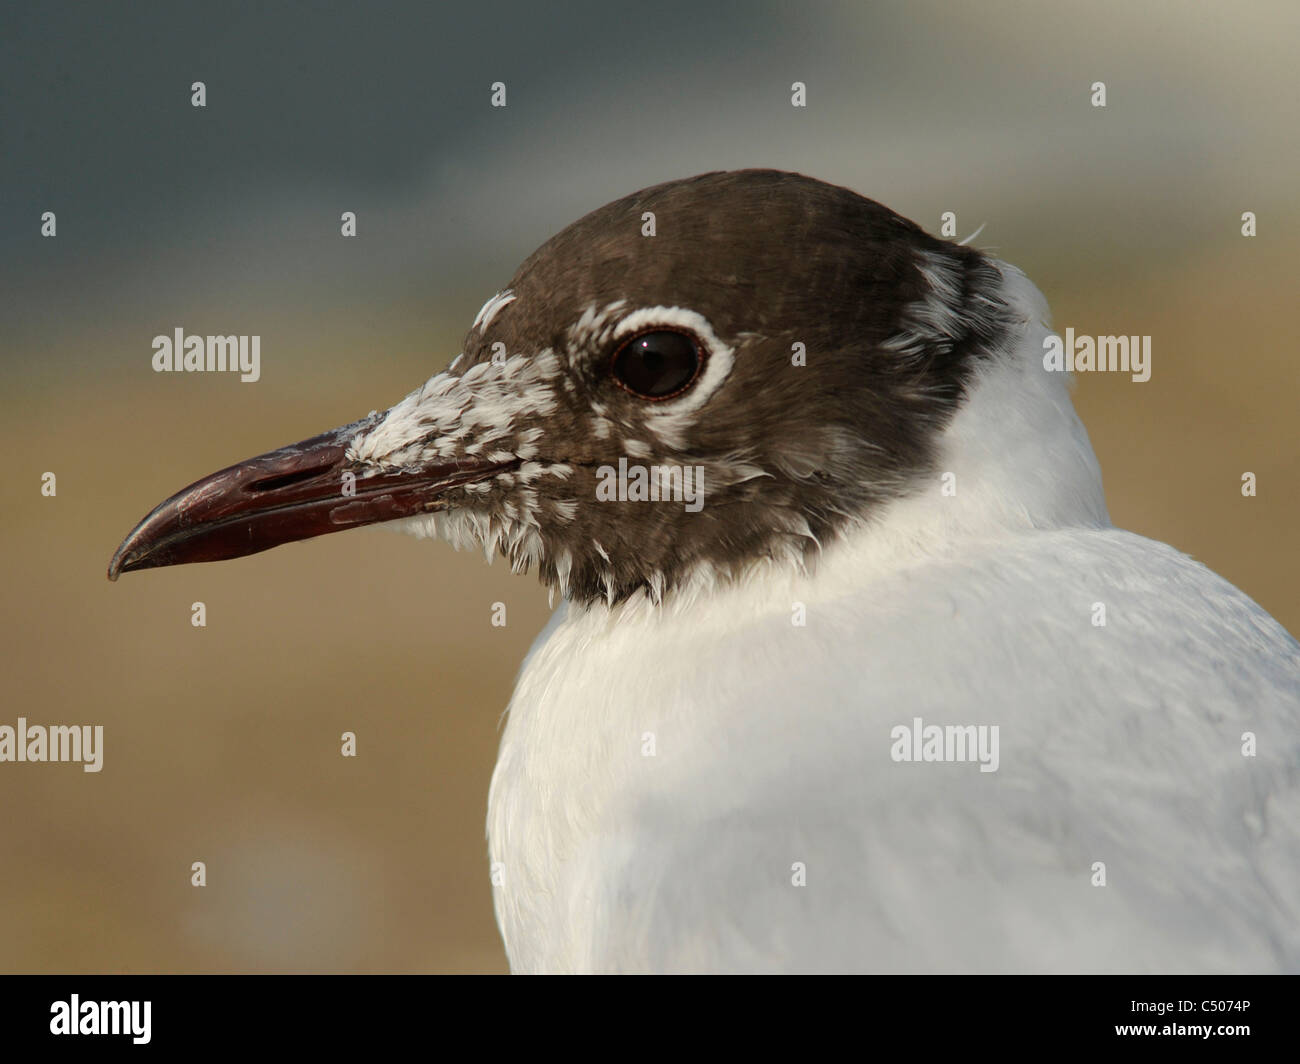 The portrait of a black-headed gull. - Stock Image